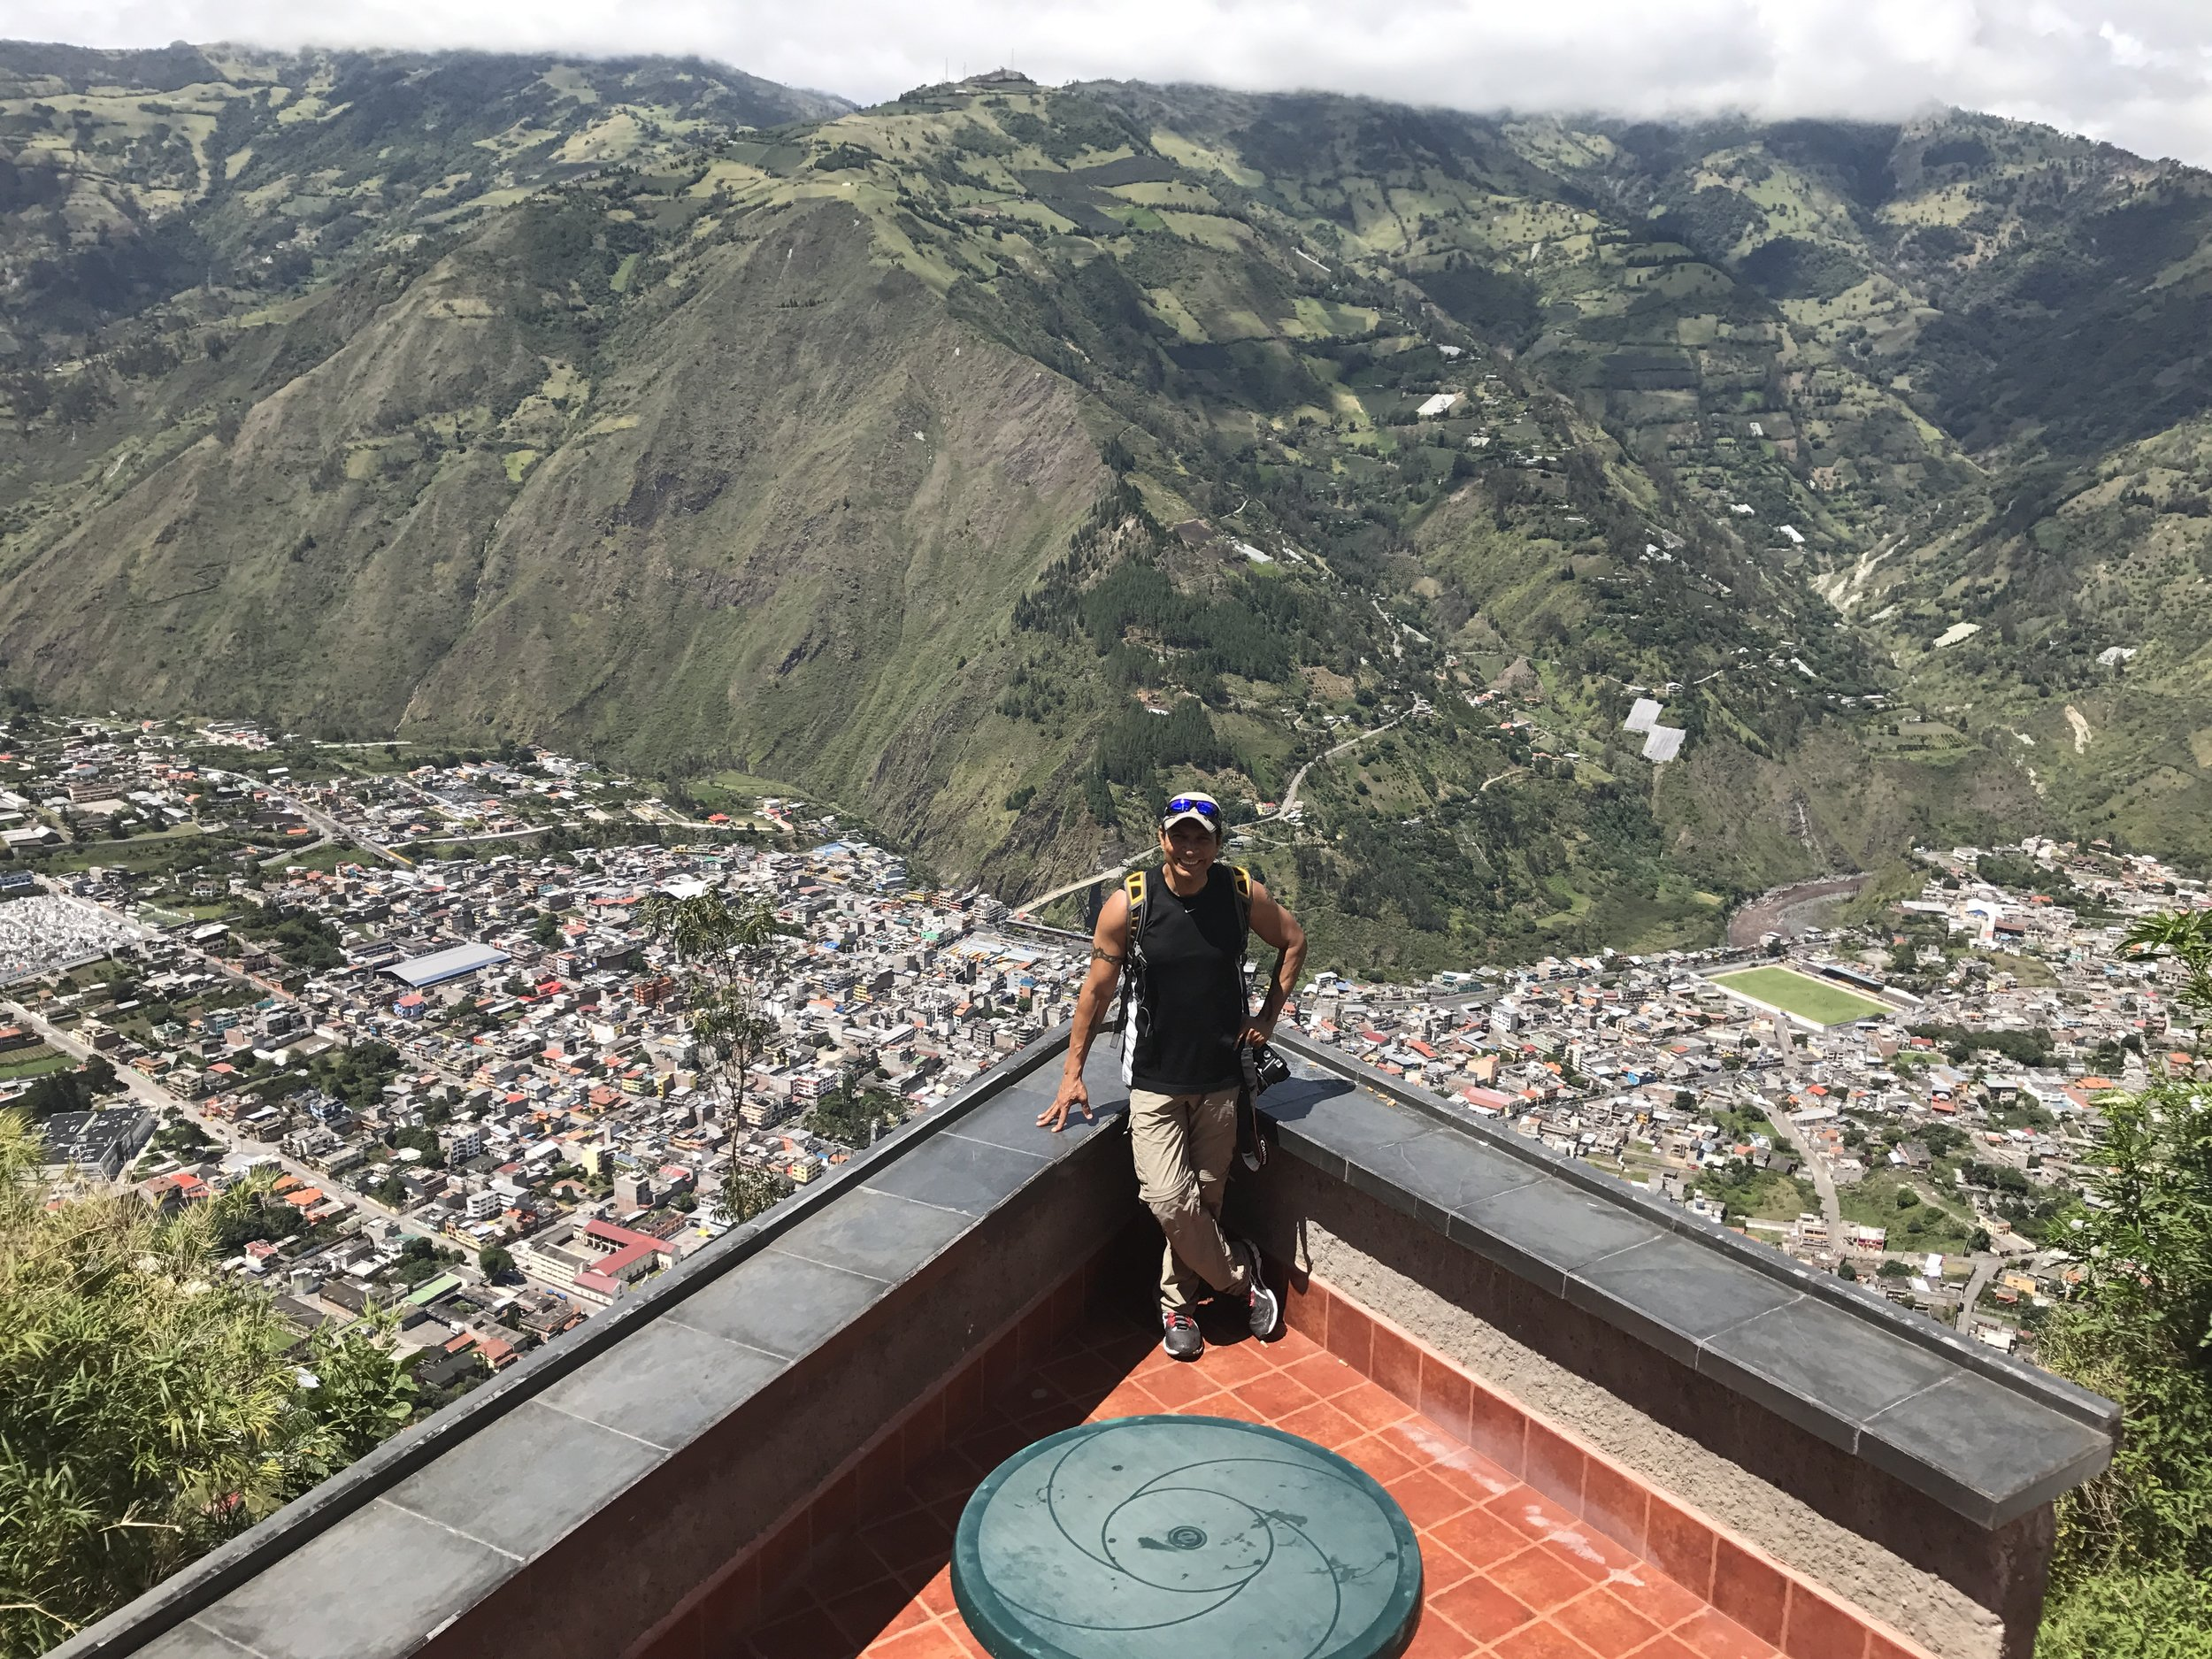 View from the lodge overlooking the City of Baños.